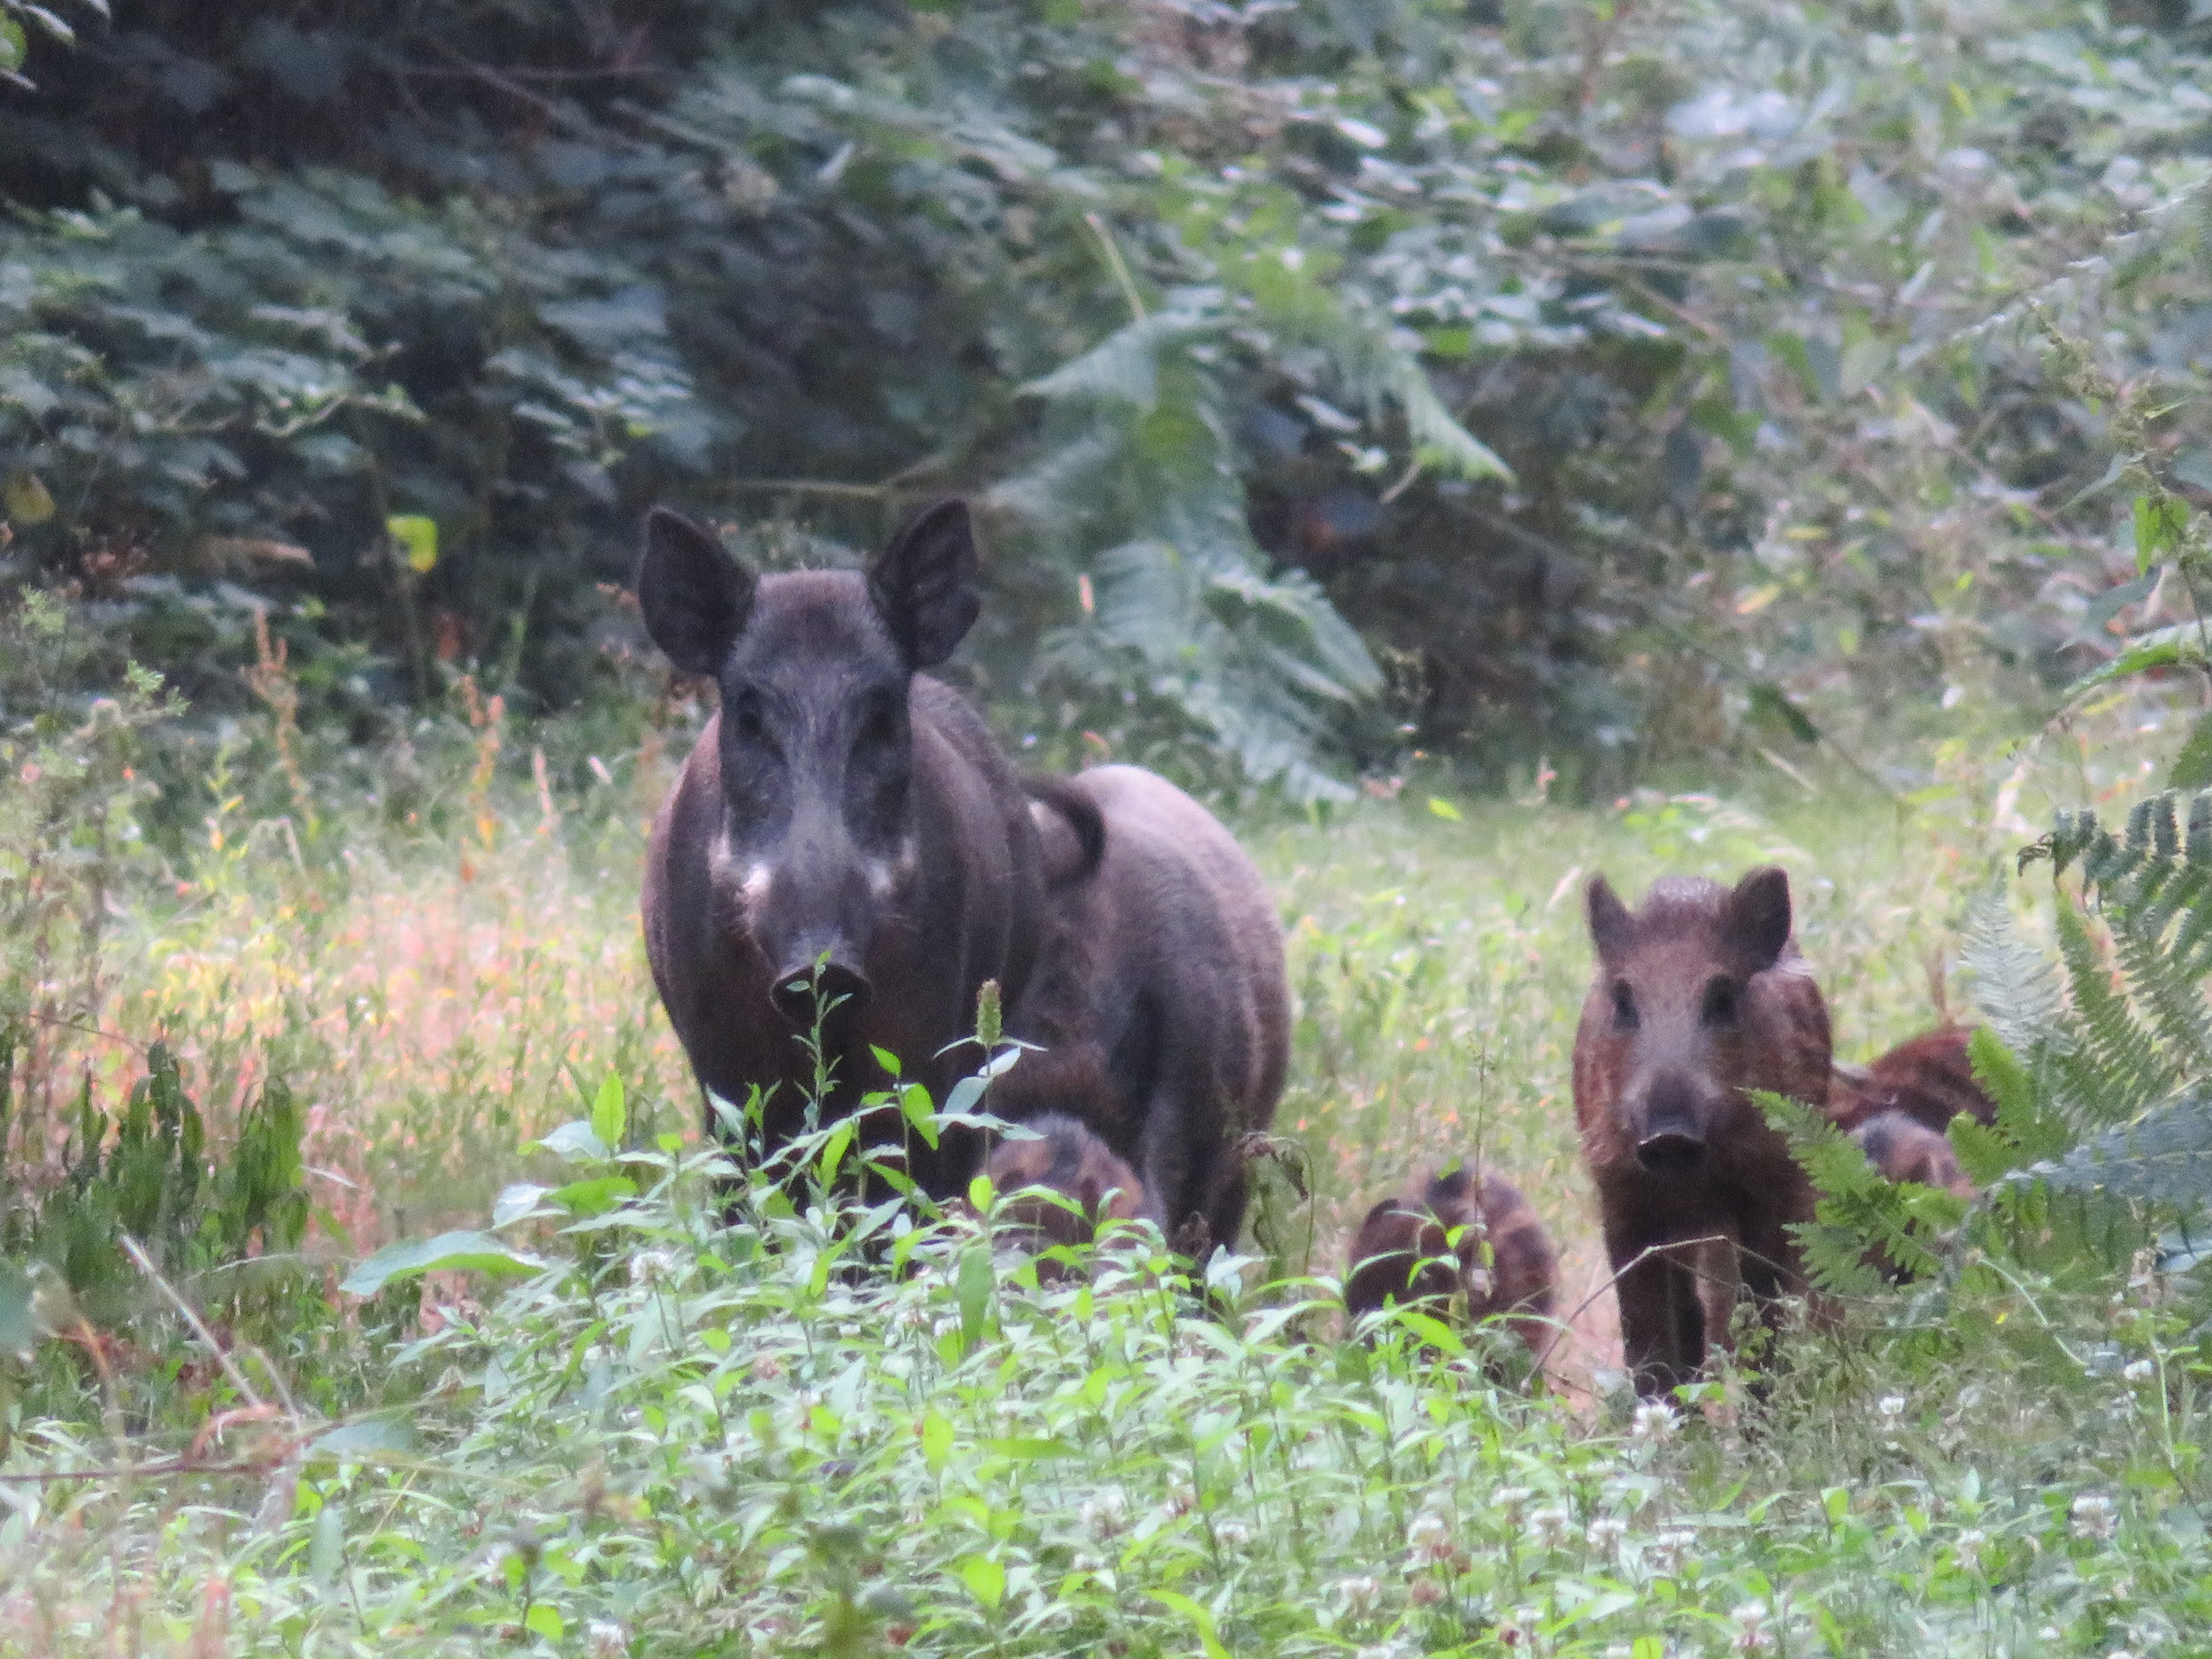 The whole Boar family was trotting towards us.